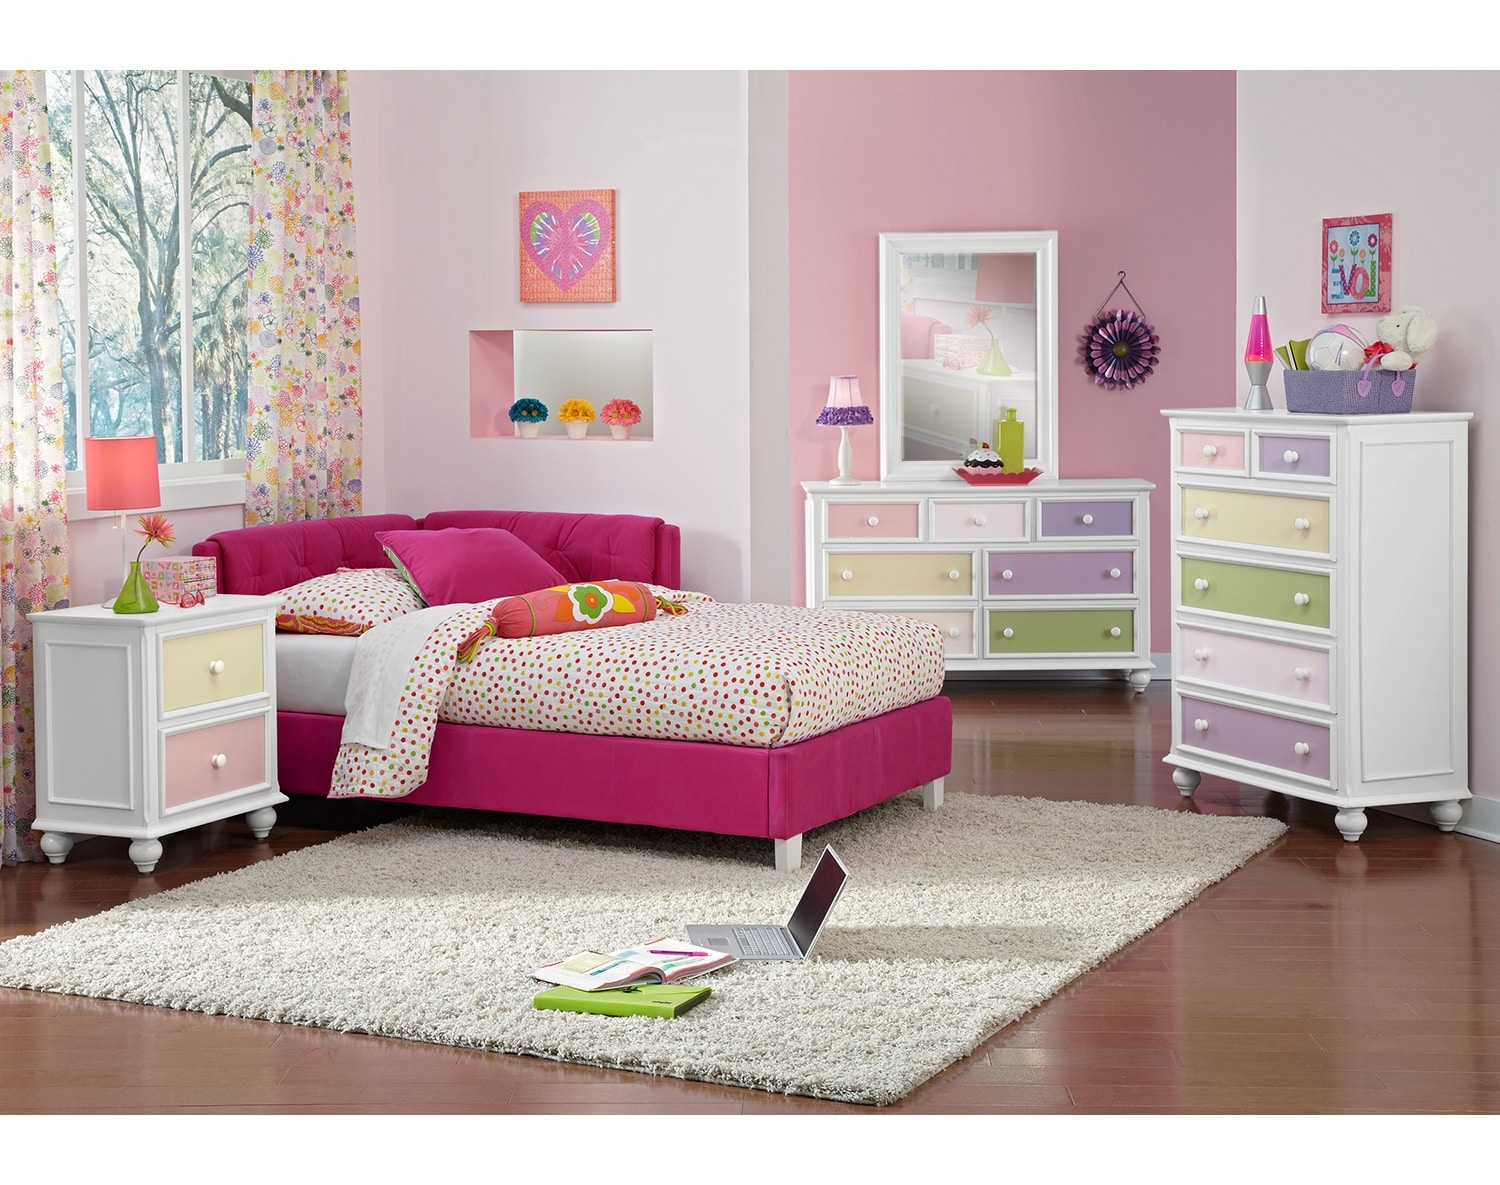 Kids Bedroom Furniture Shop Kids Bedroom Furniture American Signature Furniture